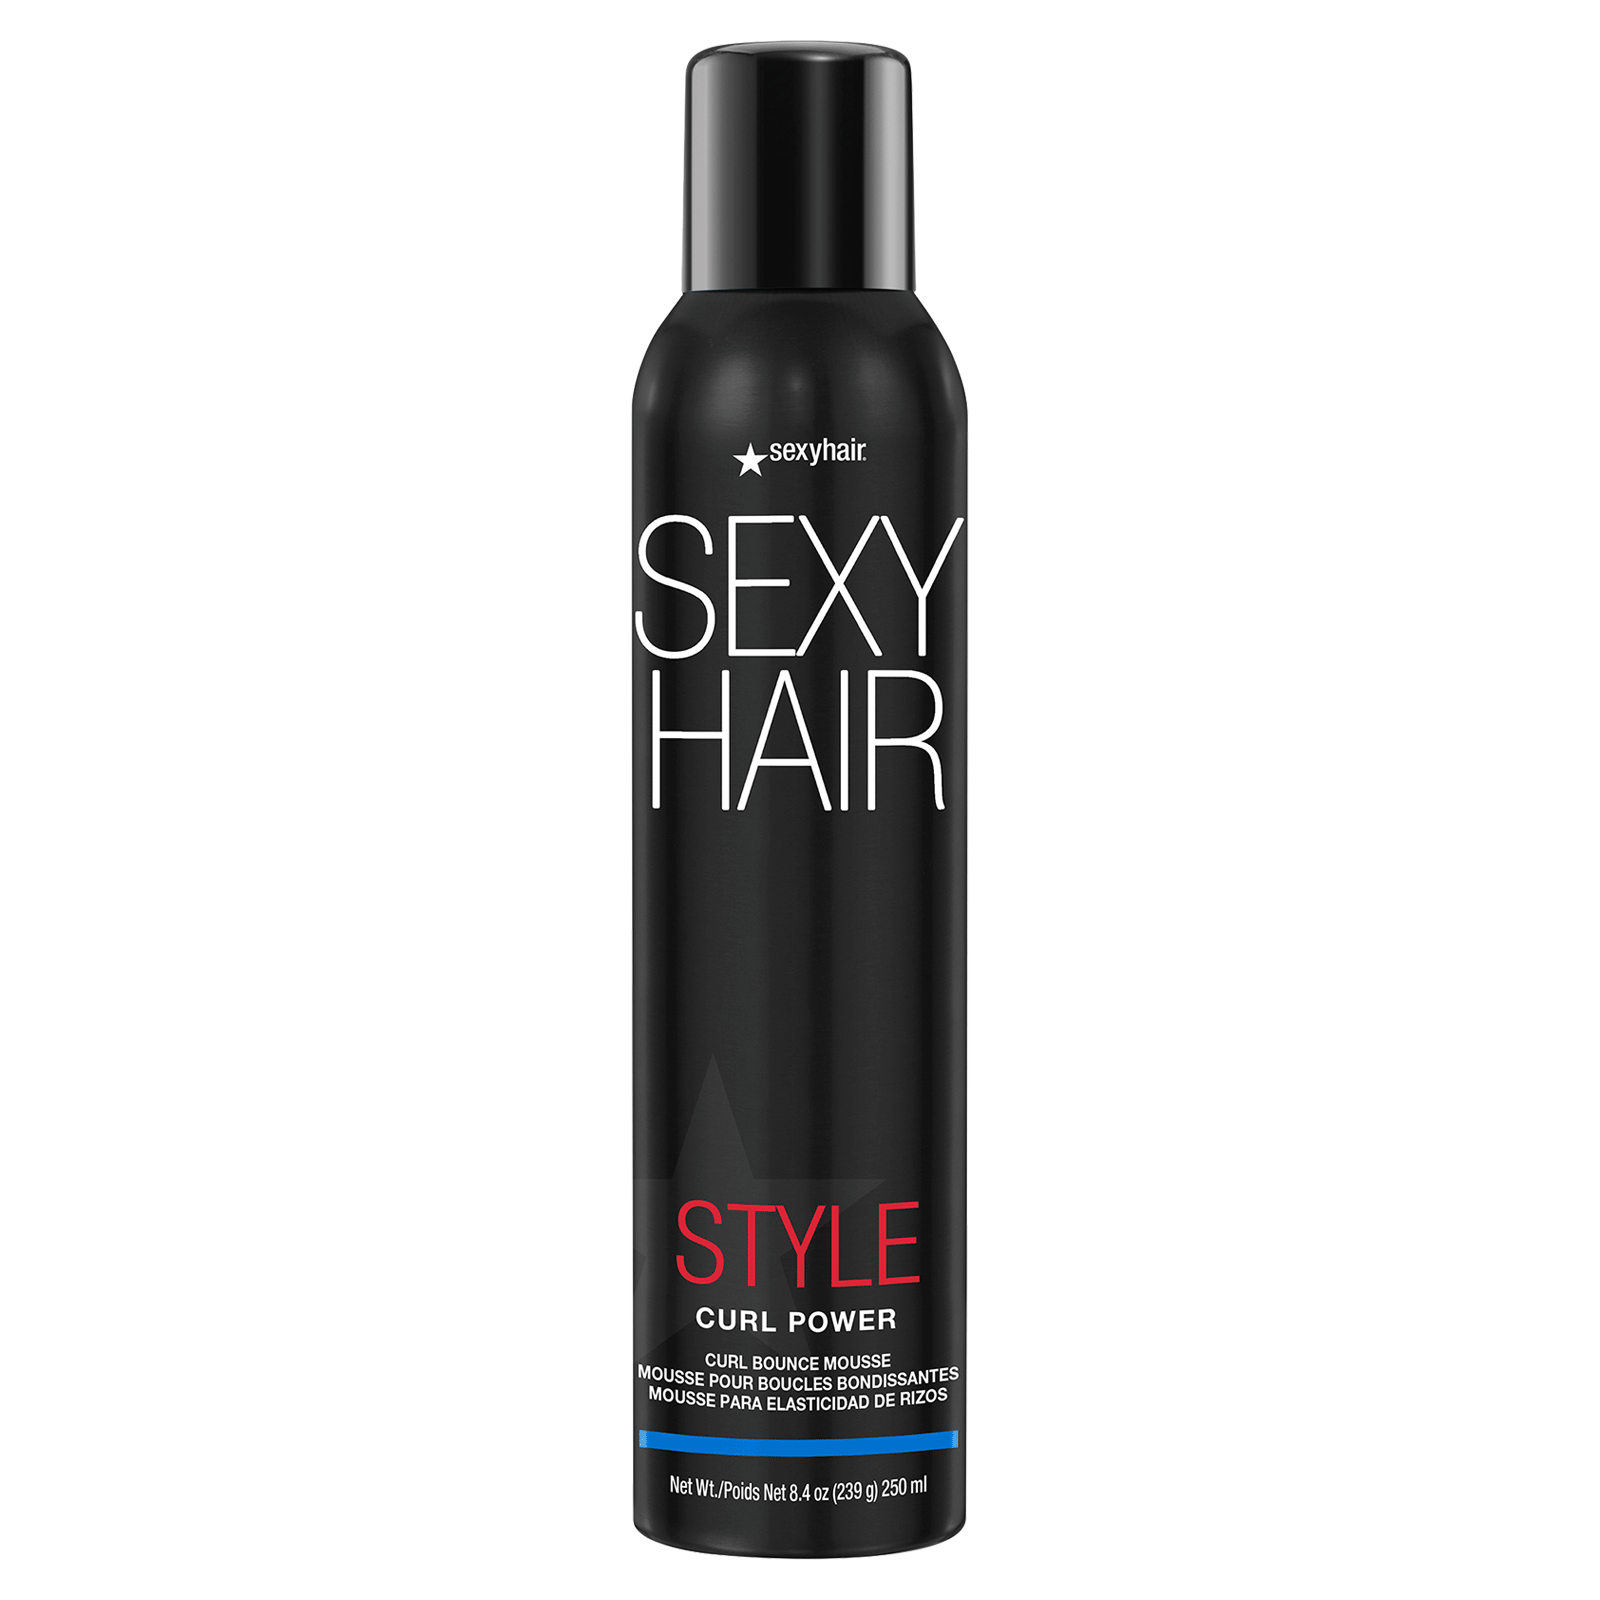 Curly Sexy Hair - Curl Power Curl  Bounce Mousse